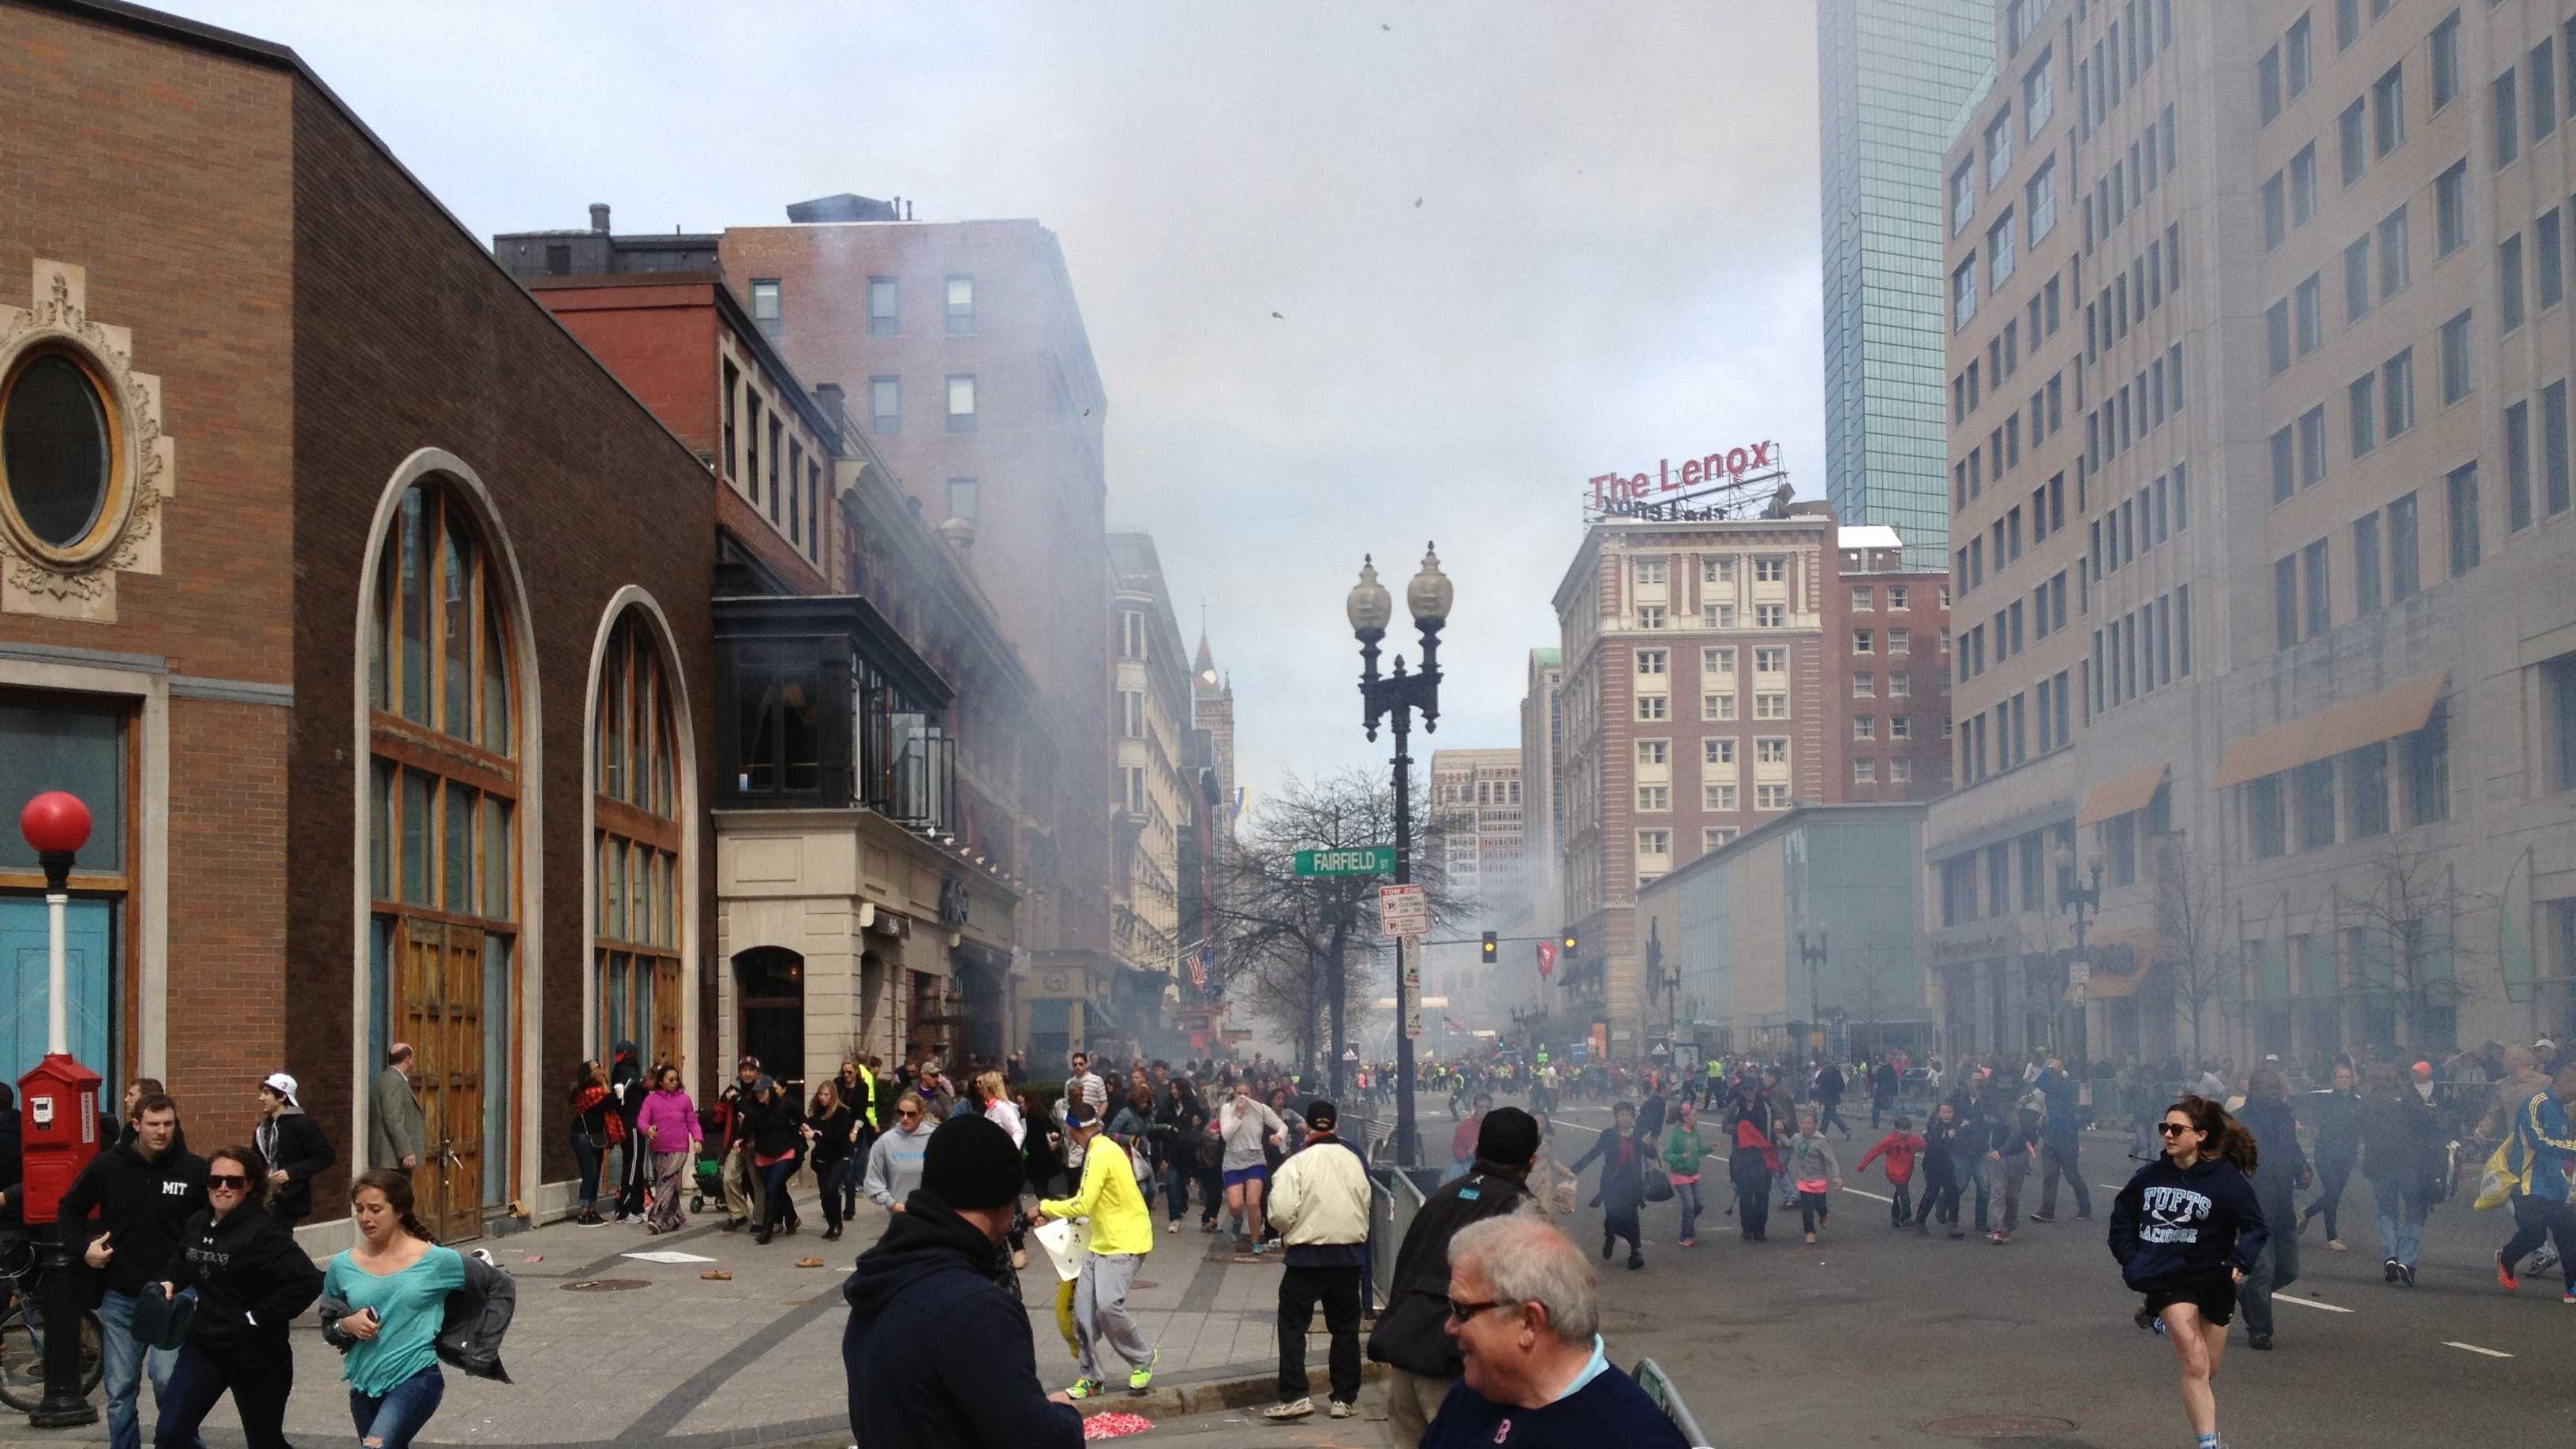 You can see Dzhokhar A. Tsarnaev on the left near the building